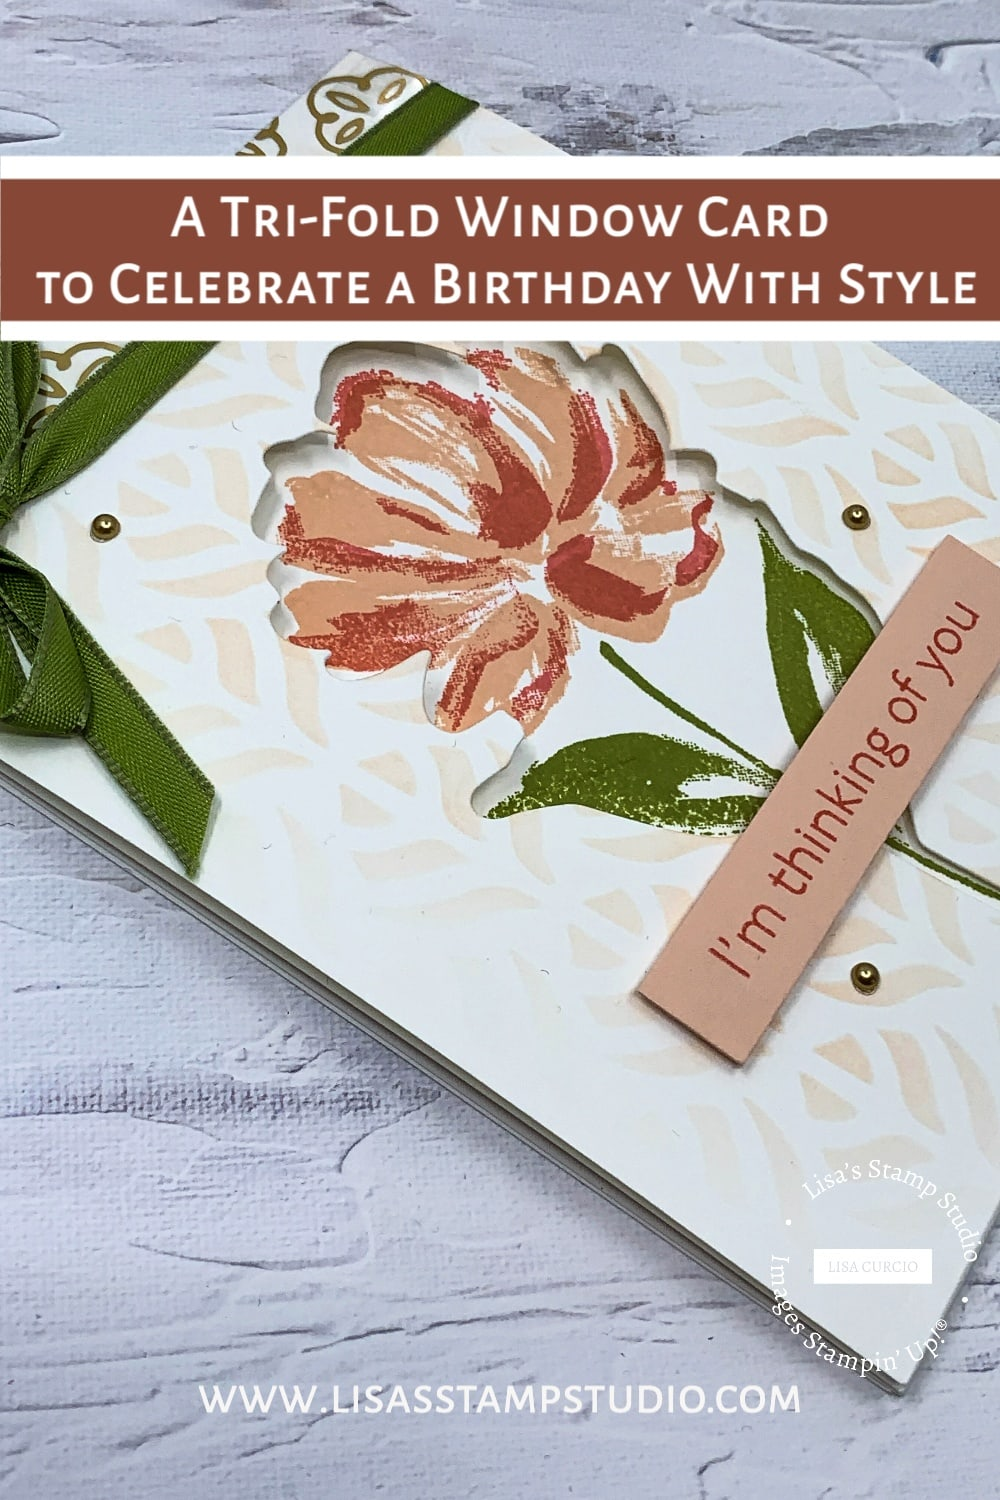 A tri-fold window card to save to your pinterest board